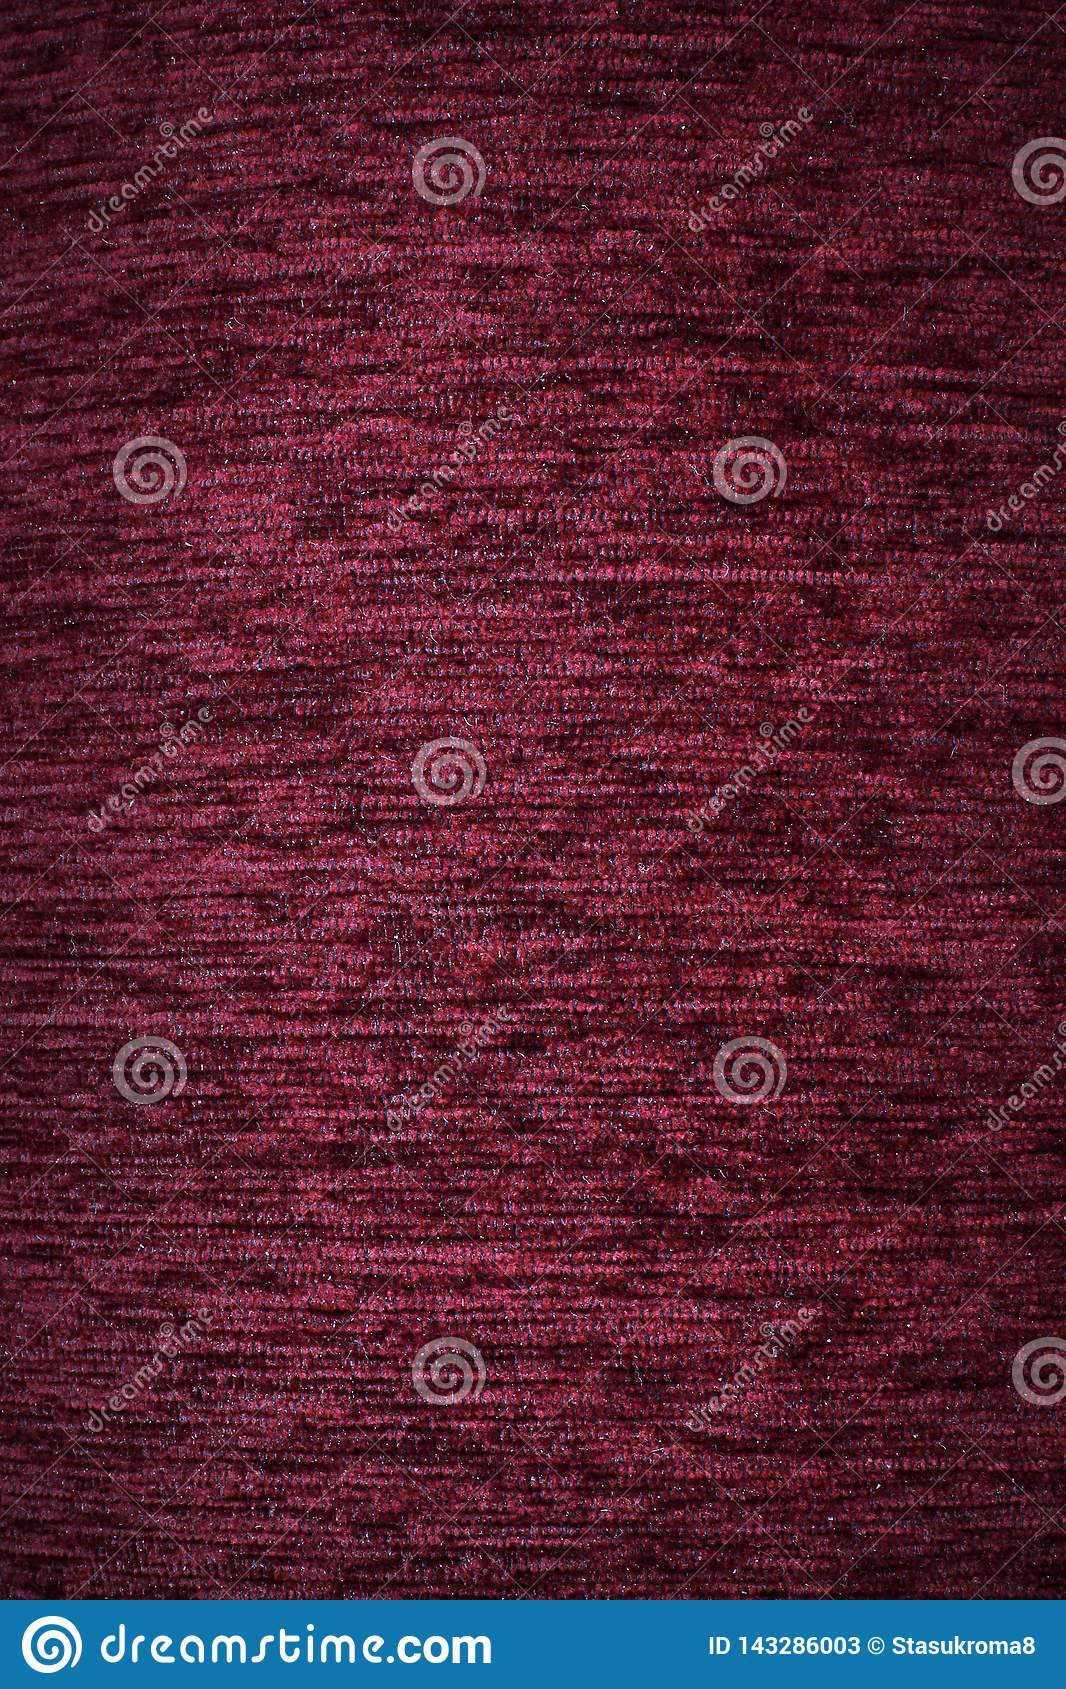 Fabric background. Top View of Cloth Textile Surface. Red thread